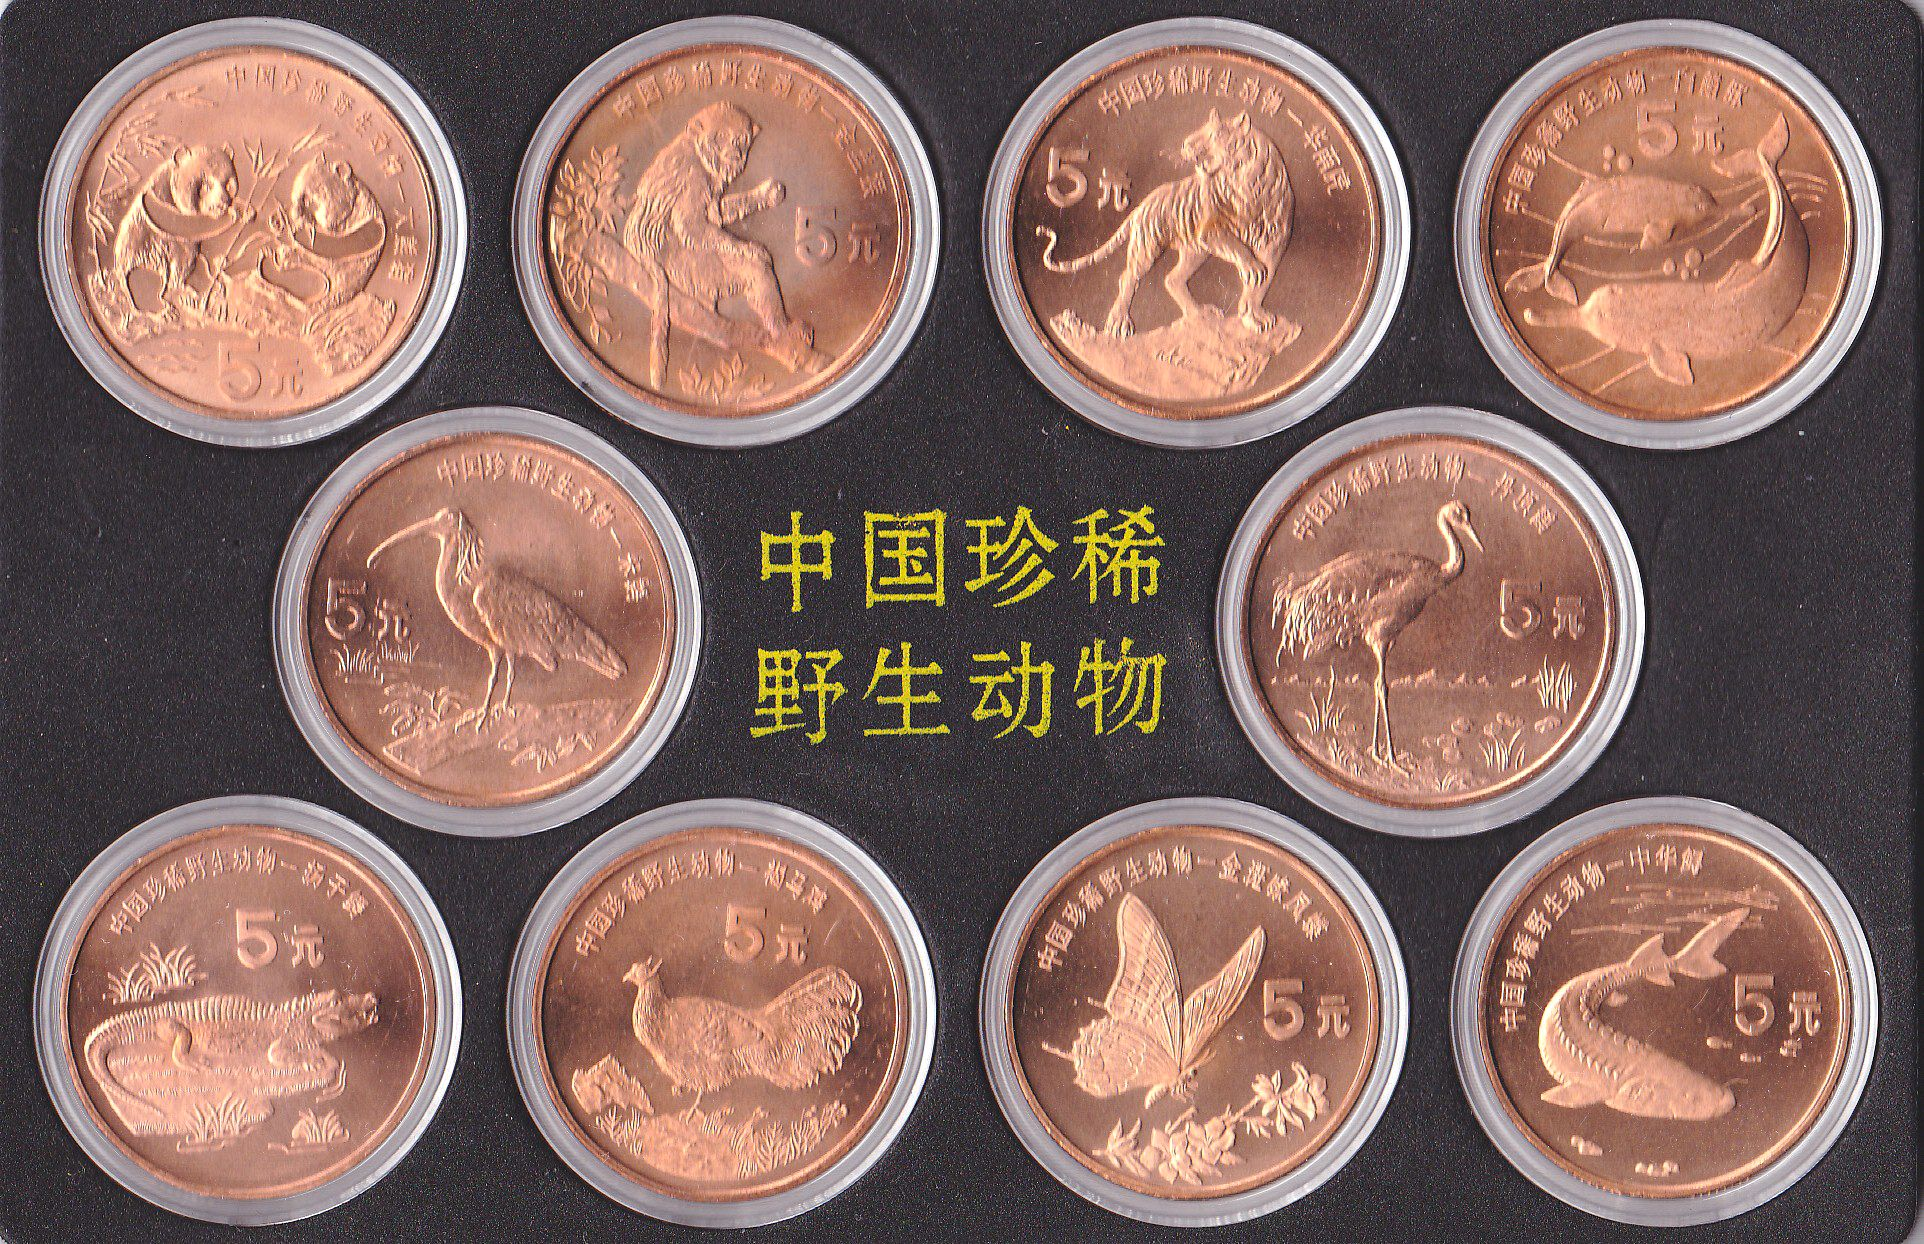 K7550, China Rare Wild Animal Series, 10 pcs Coins, 1993 to 1999